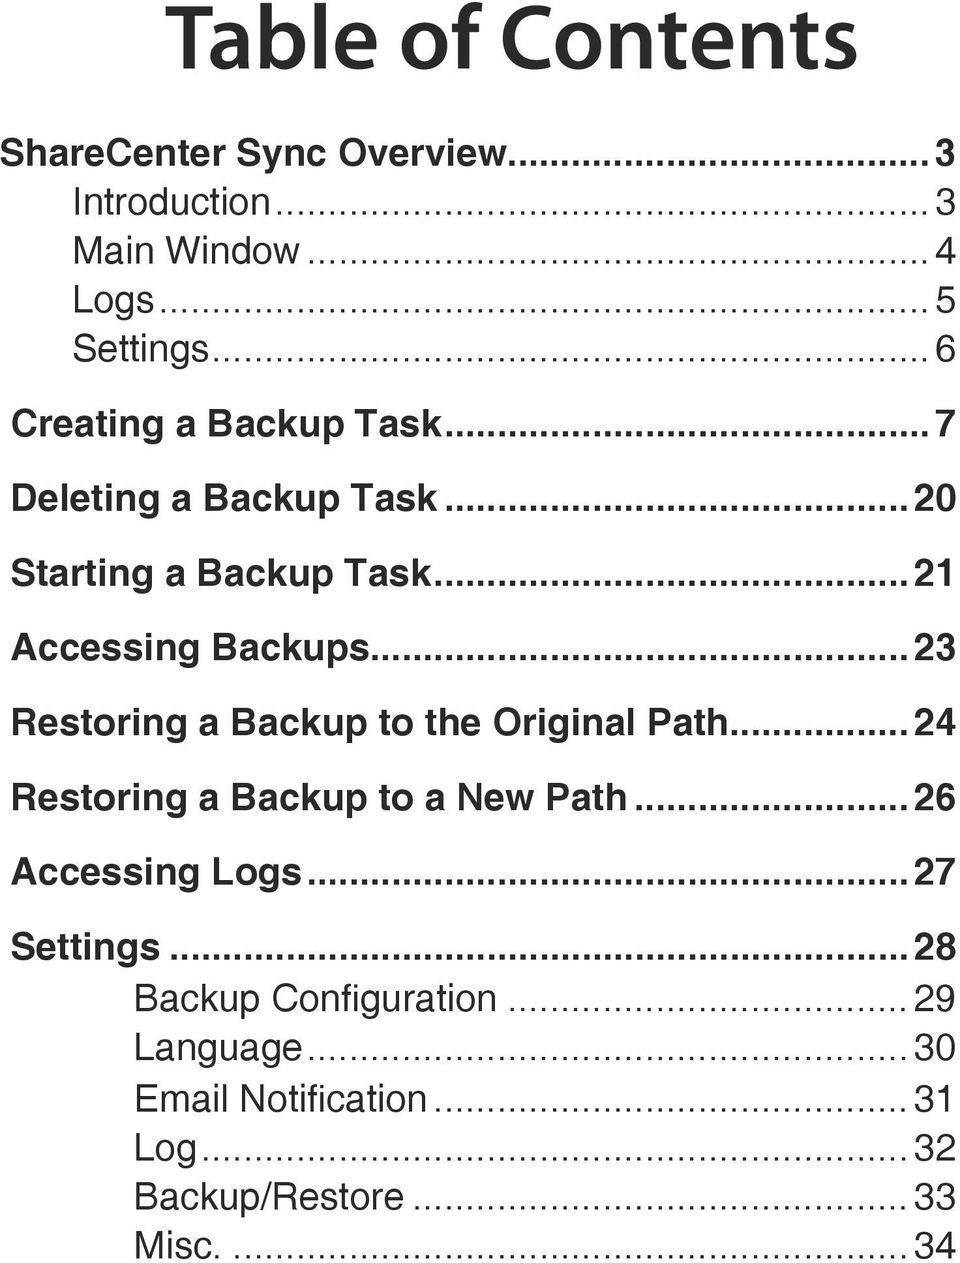 ..23 Restoring a Backup to the Original Path... 24 Restoring a Backup to a New Path...26 Accessing Logs.